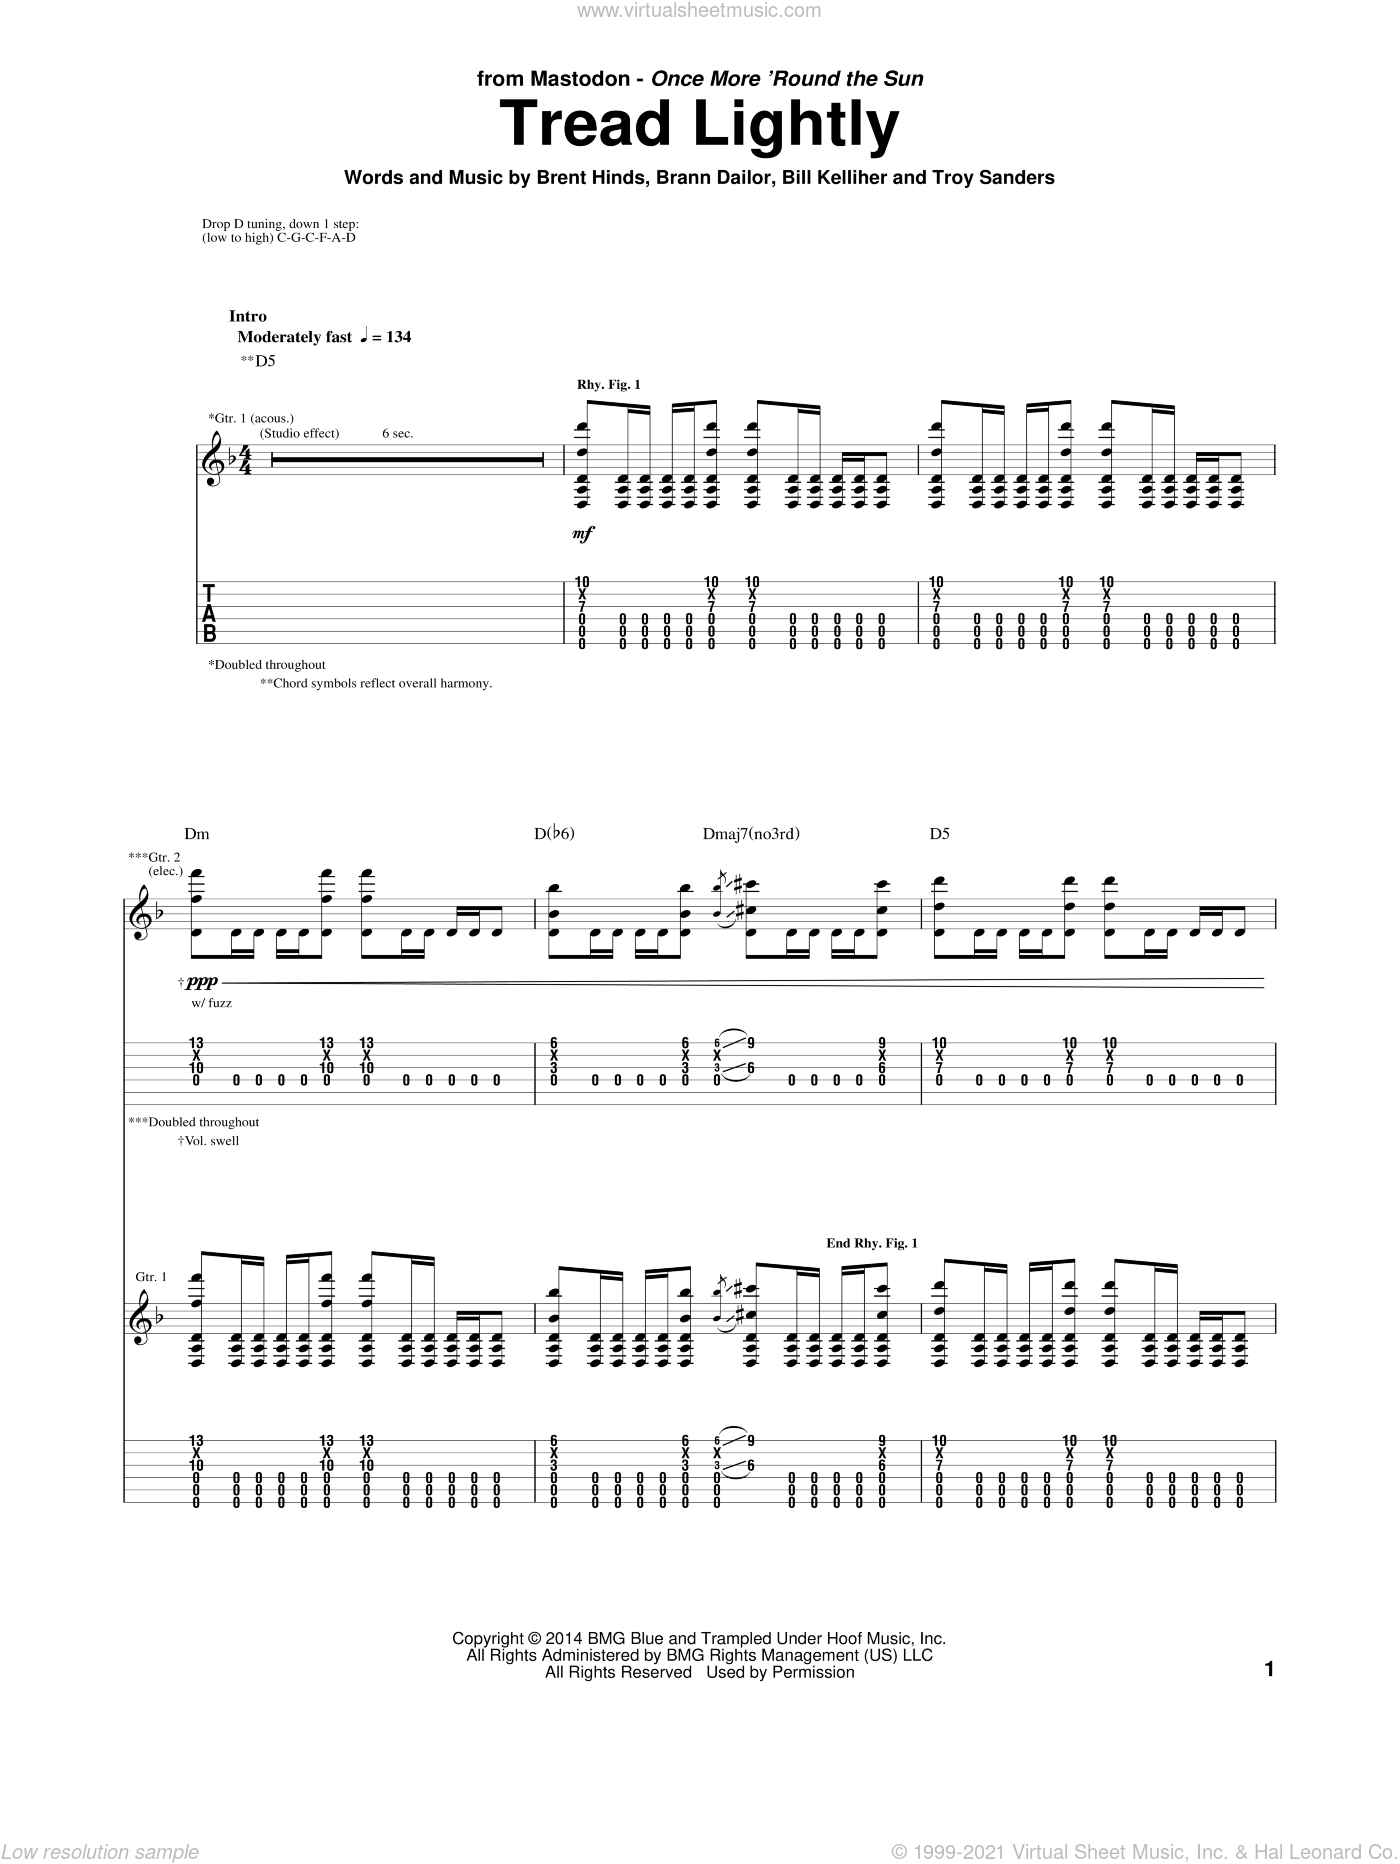 Tread Lightly sheet music for guitar (tablature) by Mastodon, Bill Kelliher, Brann Dailor, Brent Hinds and Troy Sanders, intermediate skill level